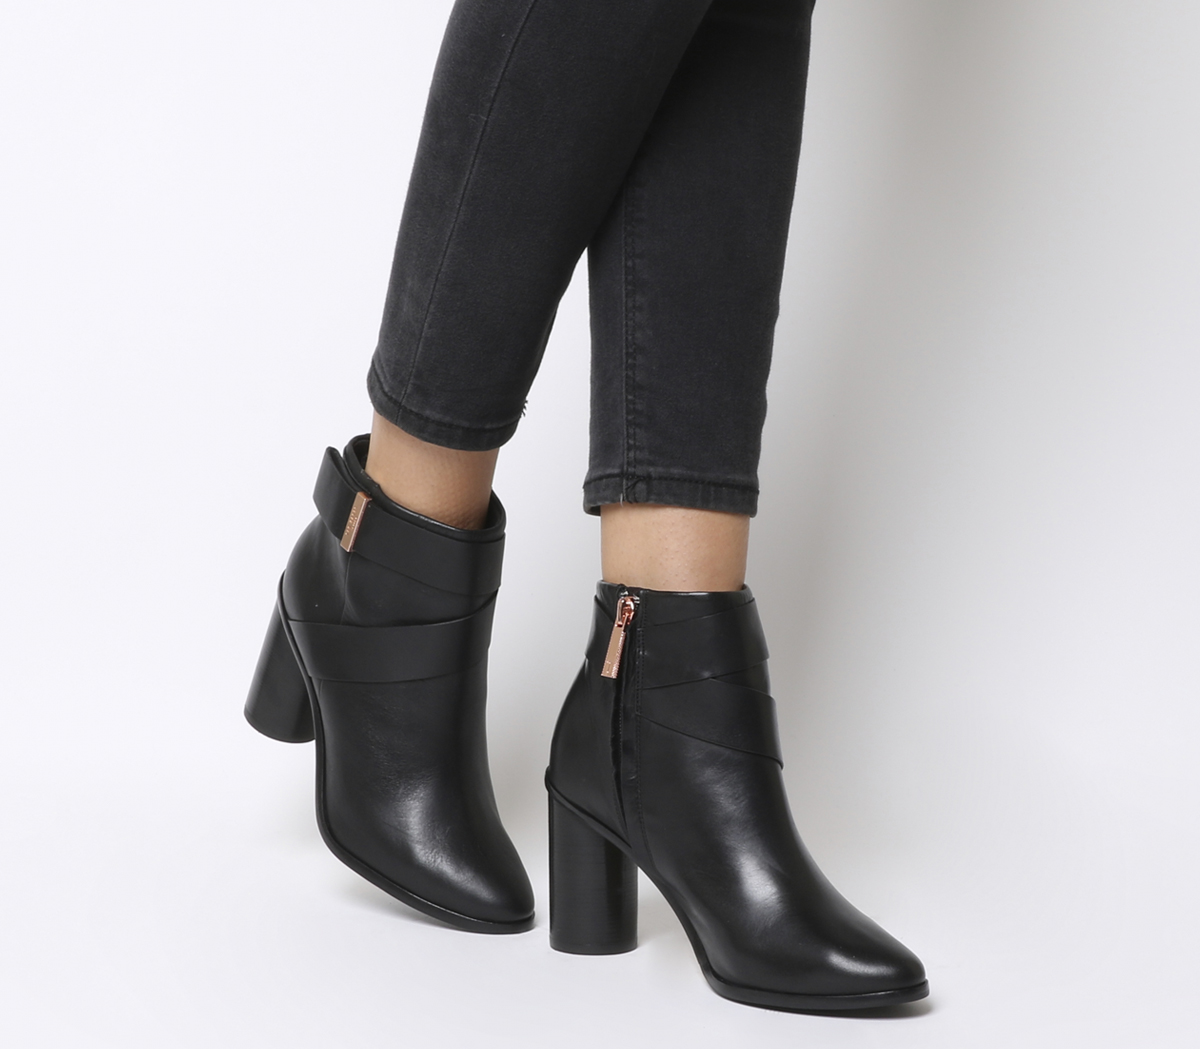 2cc2e12cc04a Sentinel Womens Ted Baker Matyna Boots Black Boots